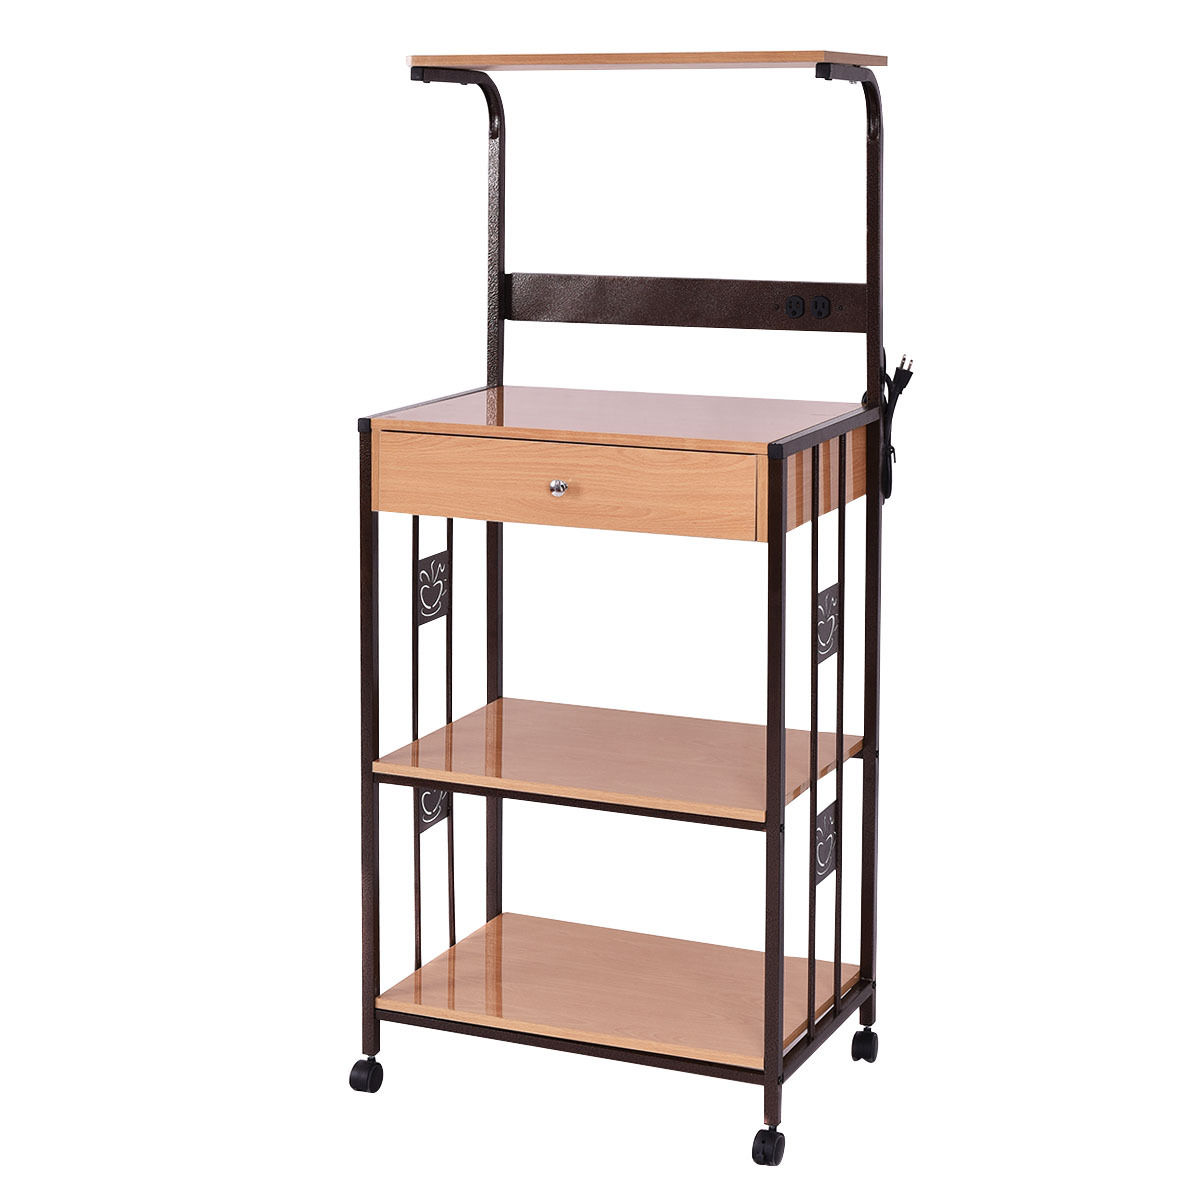 Rolling Kitchen Cart on rolling office cart, rolling microwave cart, rolling construction cart, rolling utility cart, rolling cleaning cart, rolling canvas cart, rolling travel cart, outdoor rolling cart, rolling countertop cart, rolling metal cart tv,